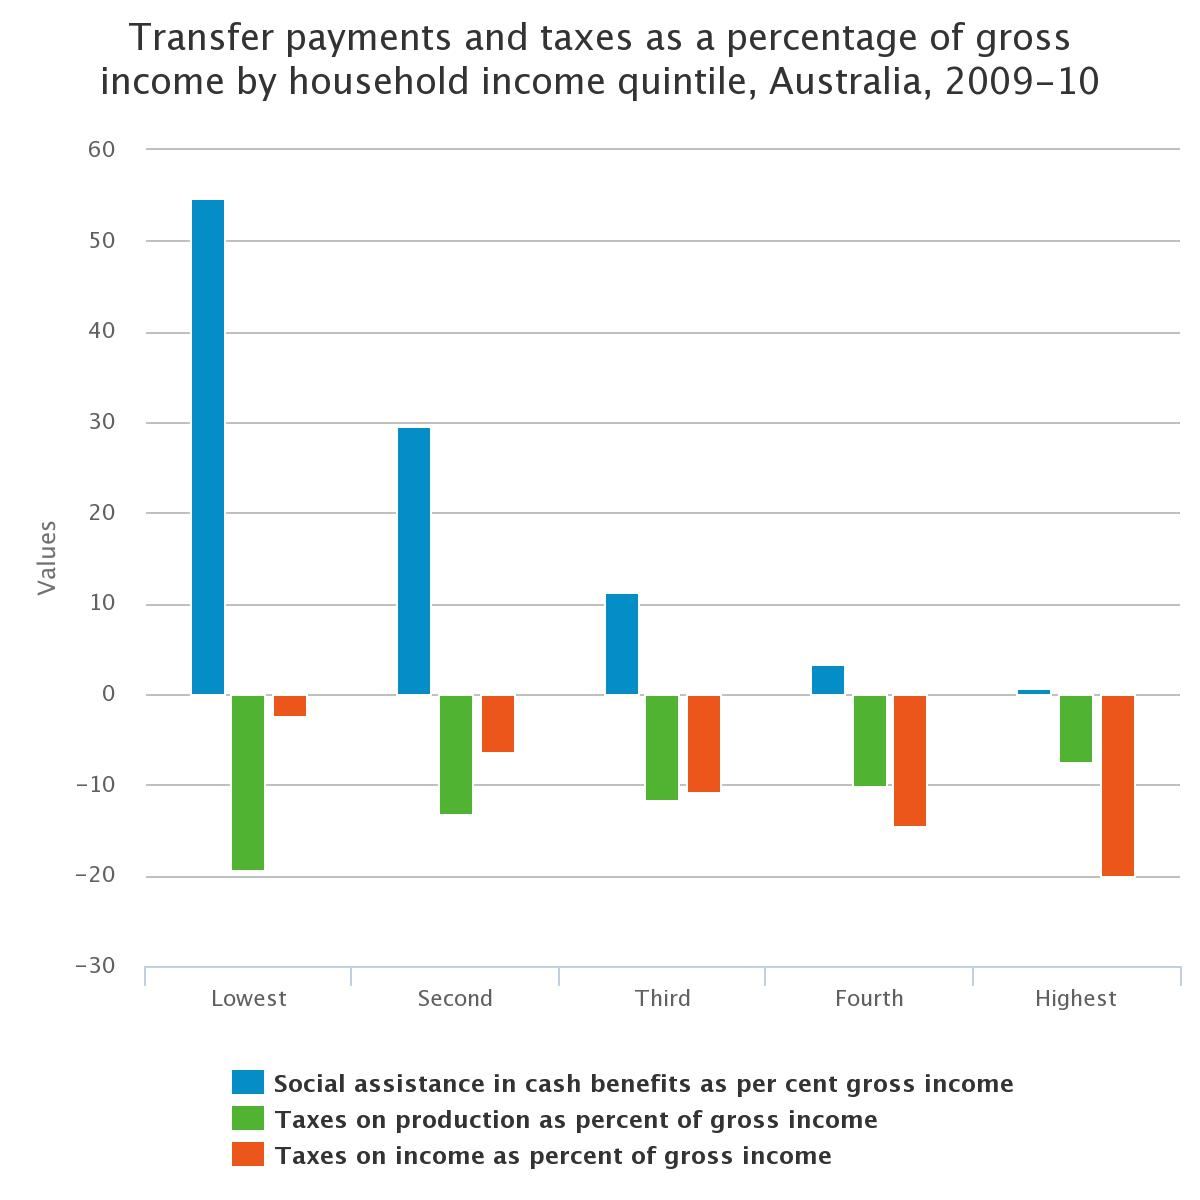 Transfer payments and taxes as a percentage of gross income by household income quintile, Australia, 2009-10